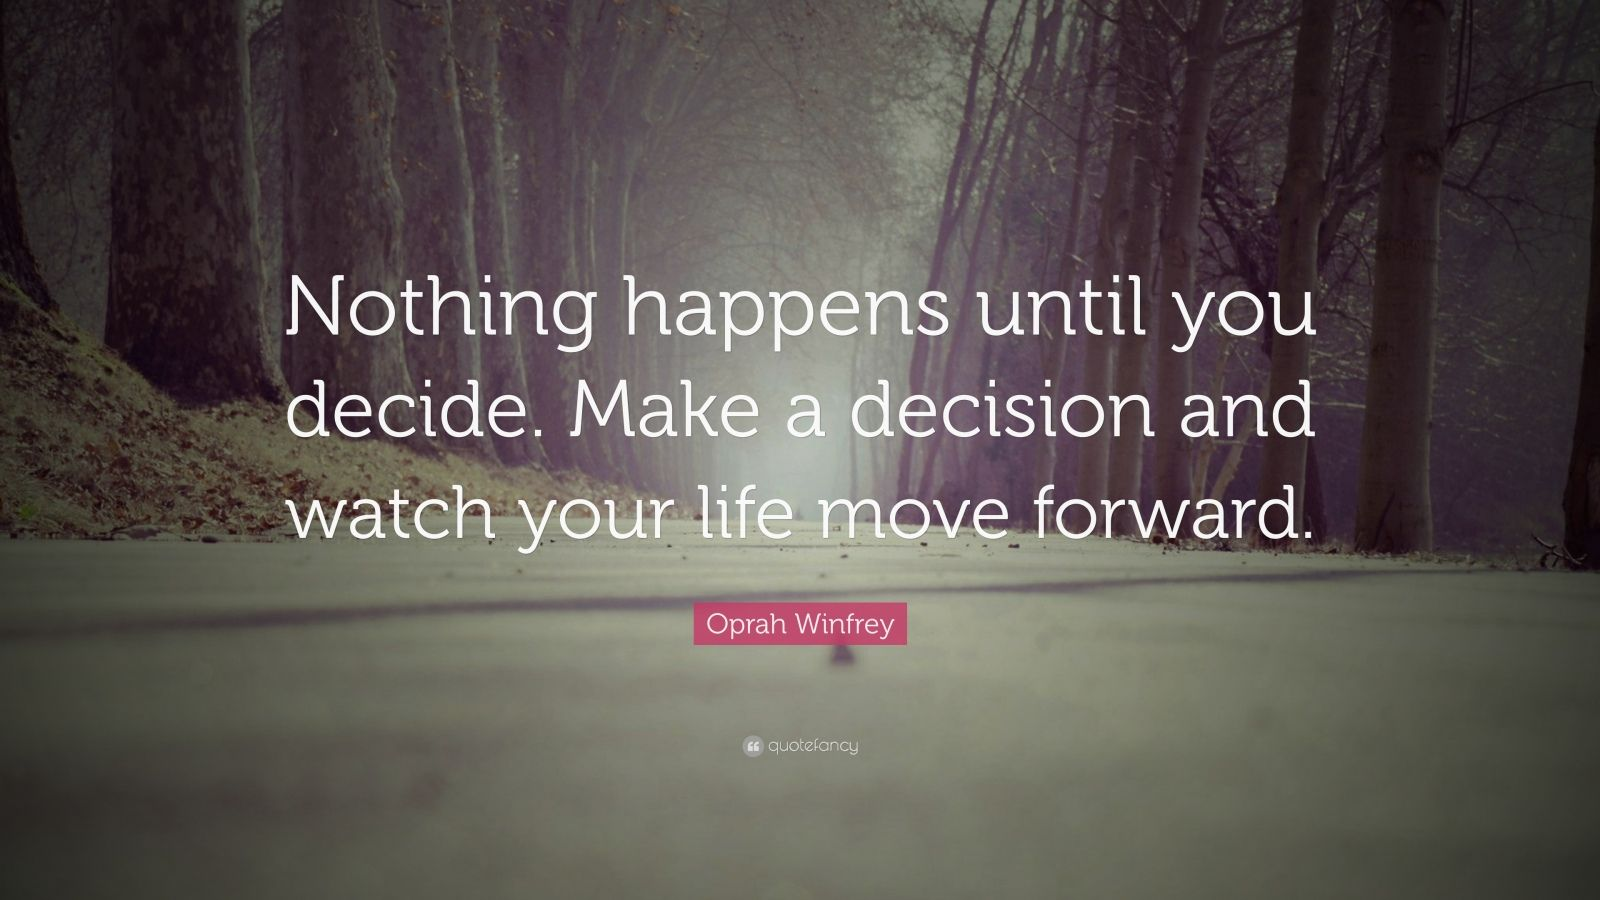 Bhagavad Gita Wallpapers Quotes Oprah Winfrey Quote Nothing Happens Until You Decide